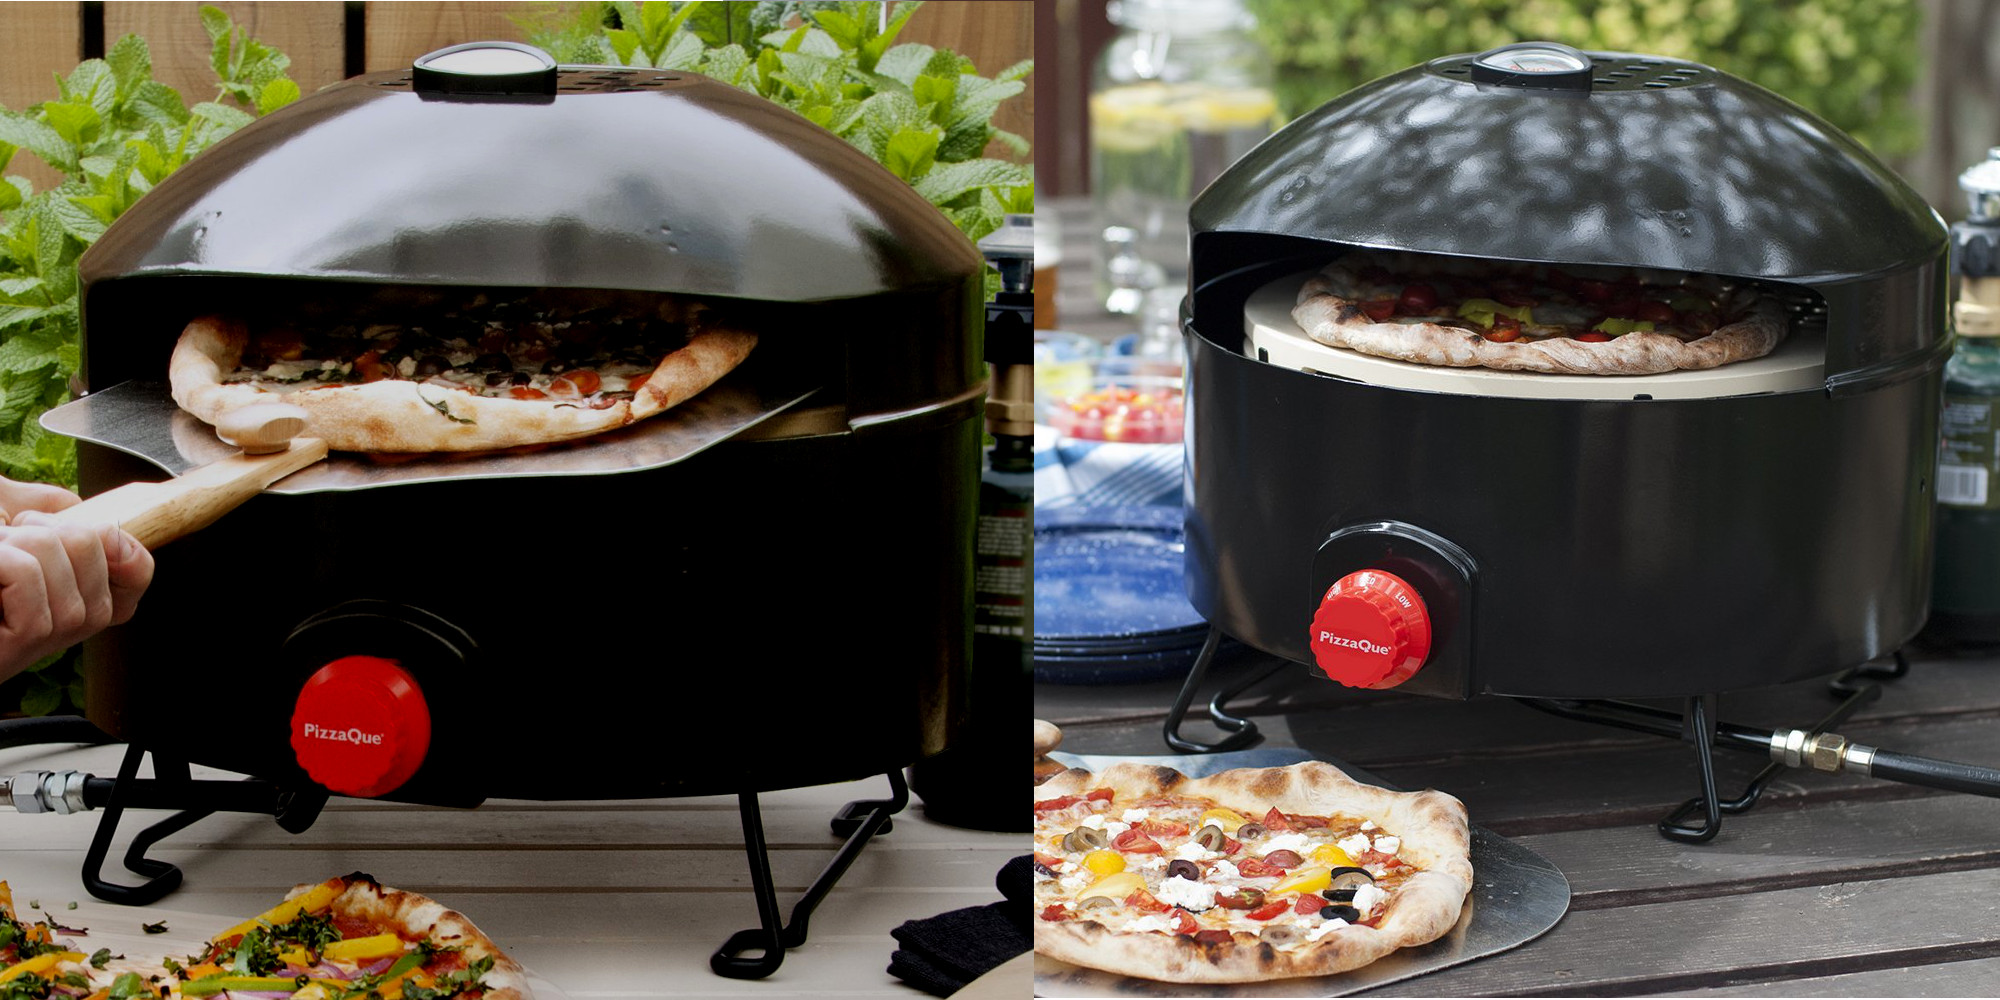 The Steel Pizzaque Outdoor Oven W 14 Inch Stone Is Down